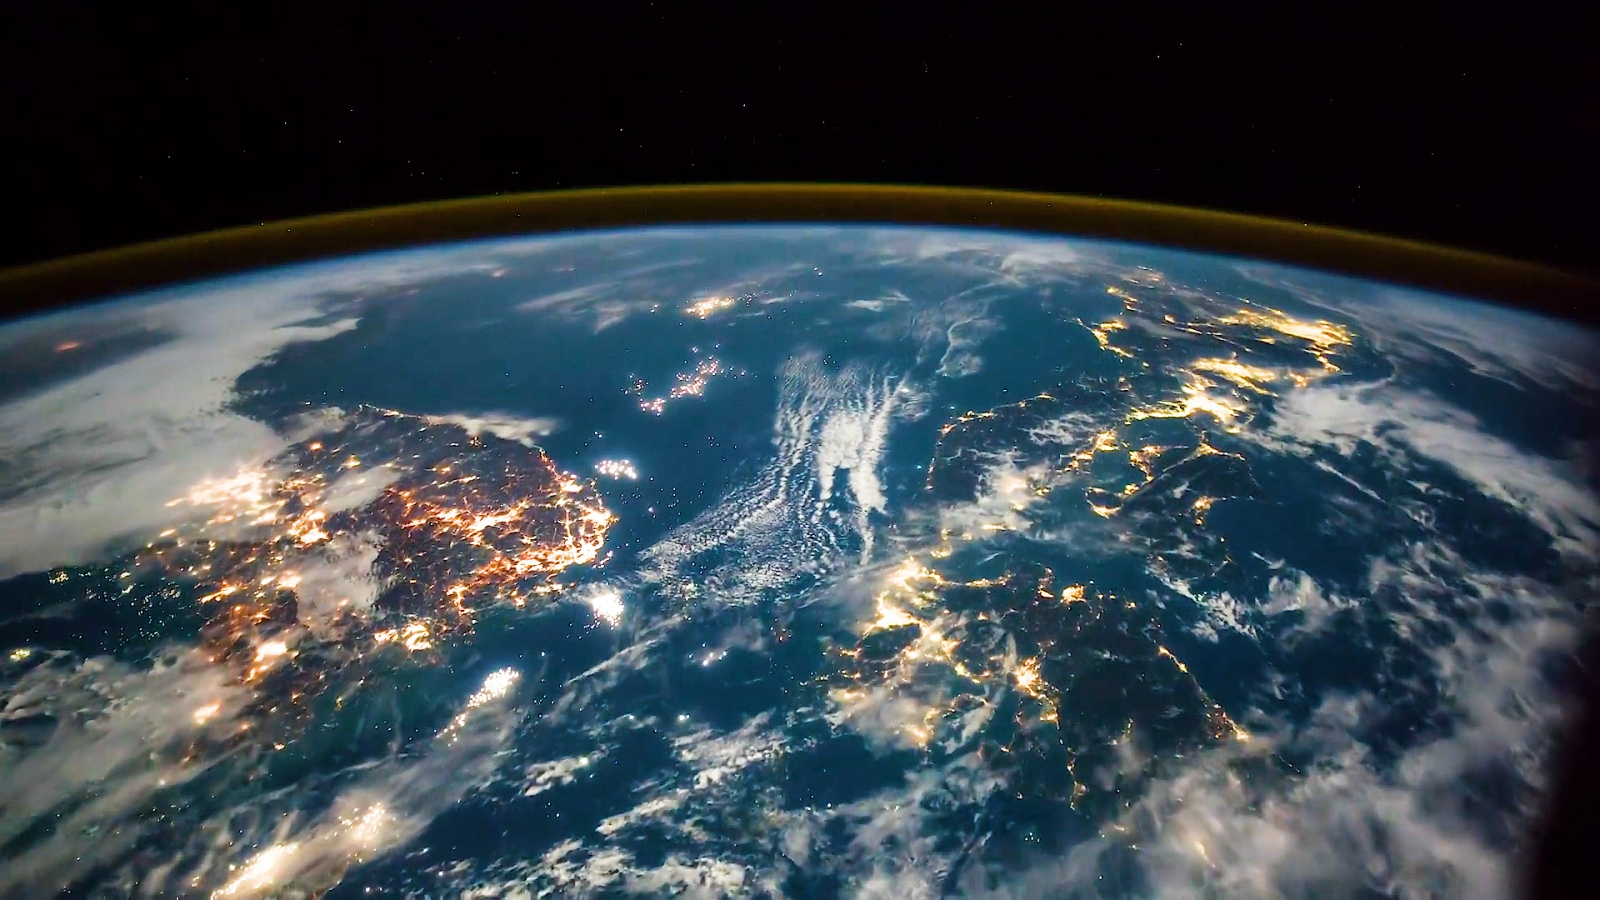 Incredible View Of Earth From ISS Shows Lightning And City Lights